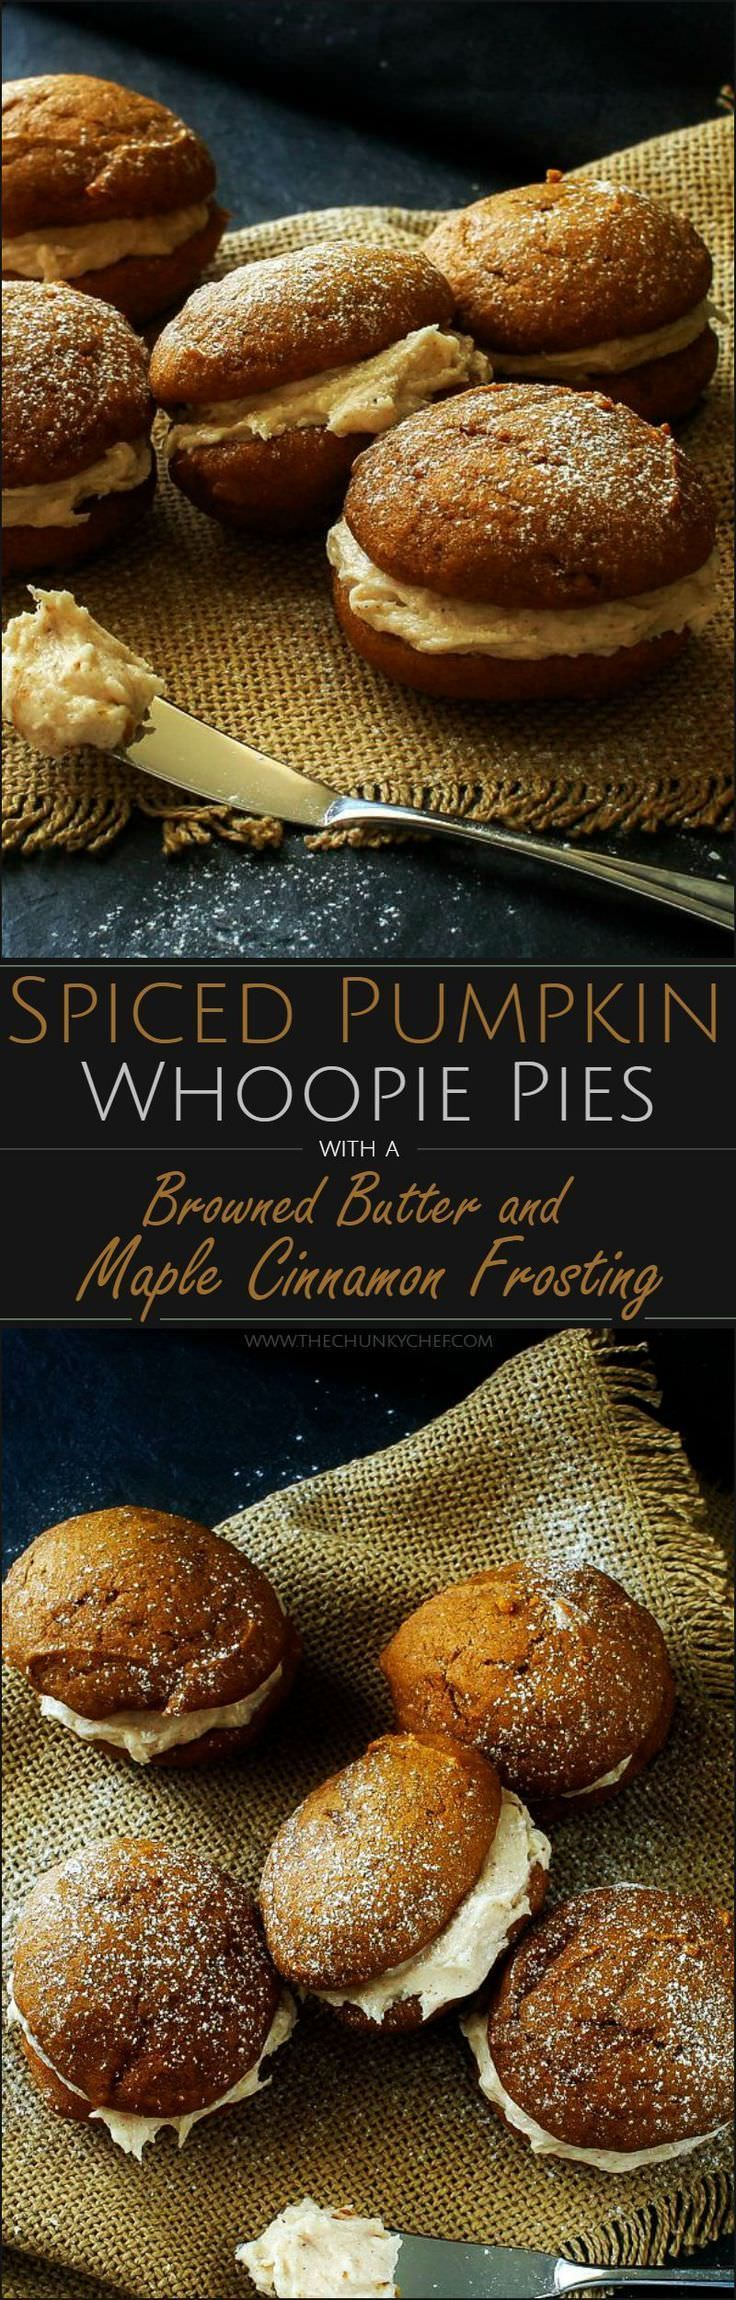 Soft and lightly spiced pumpkin cookies sandwiched together with a decadent, yet easy to make, browned butter maple cinnamon frosting.